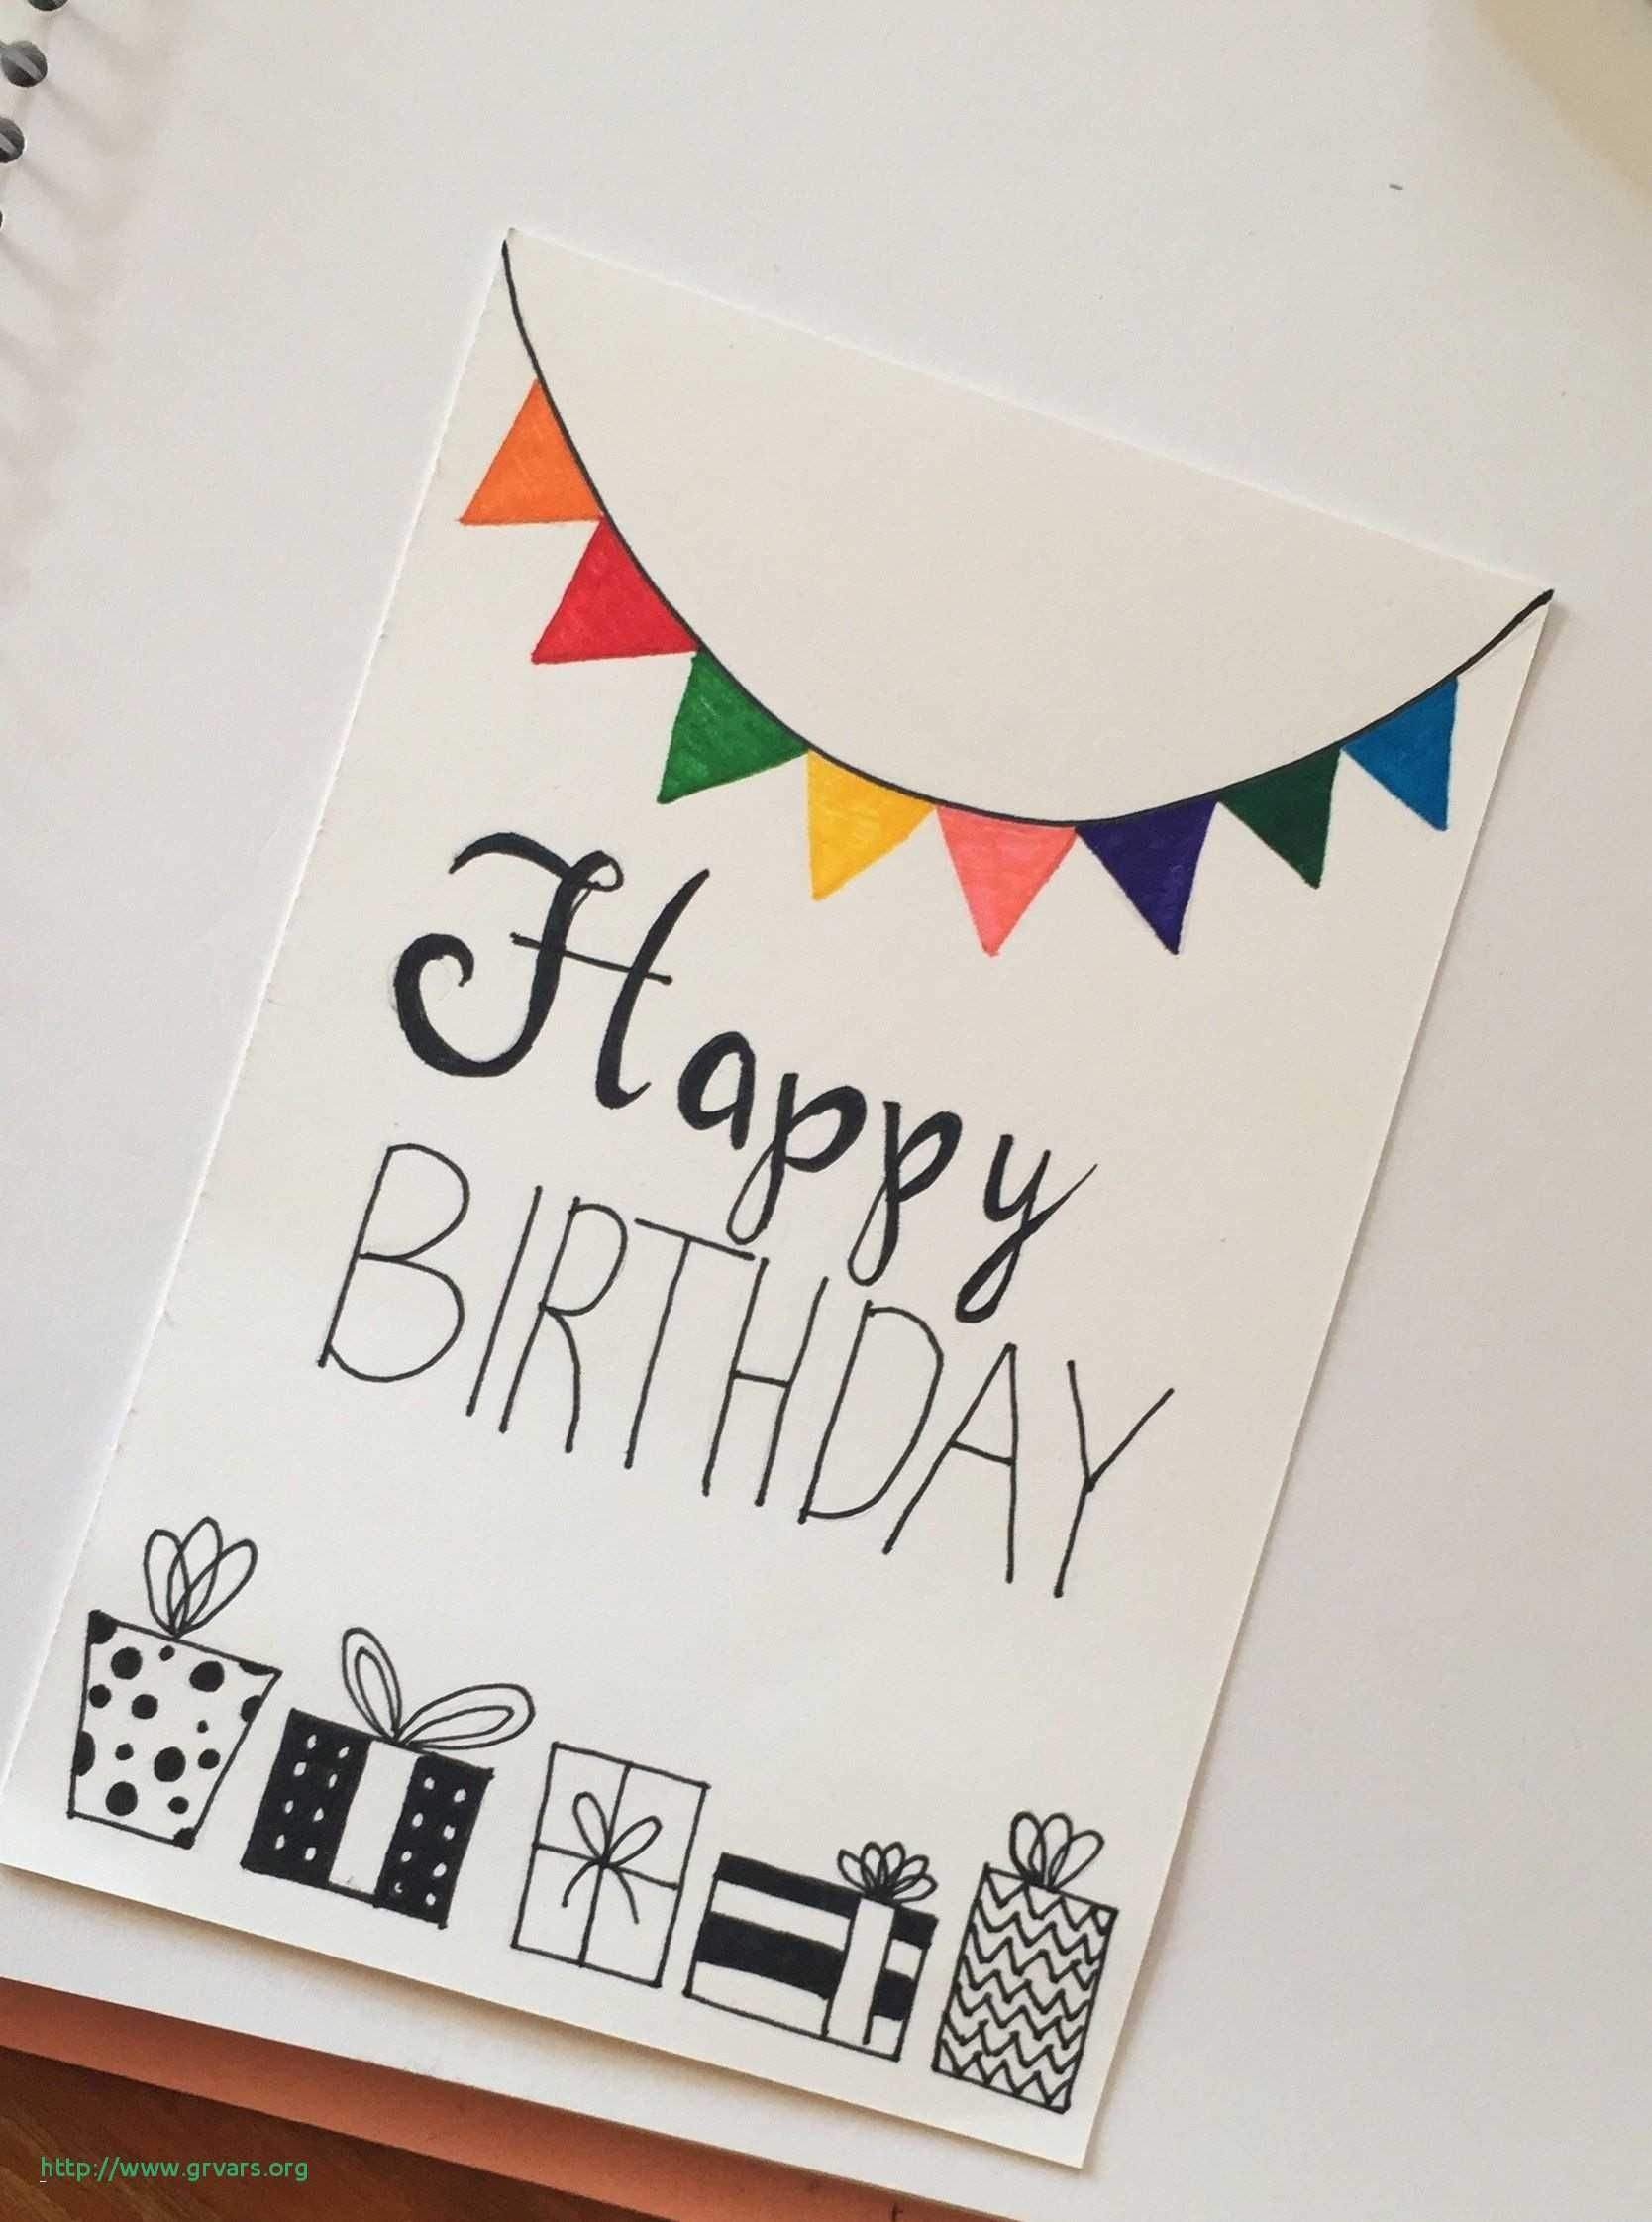 Funny Homemade Birthday Card Ideas  Awesome Image of Funny Ideas For Birthday Cards